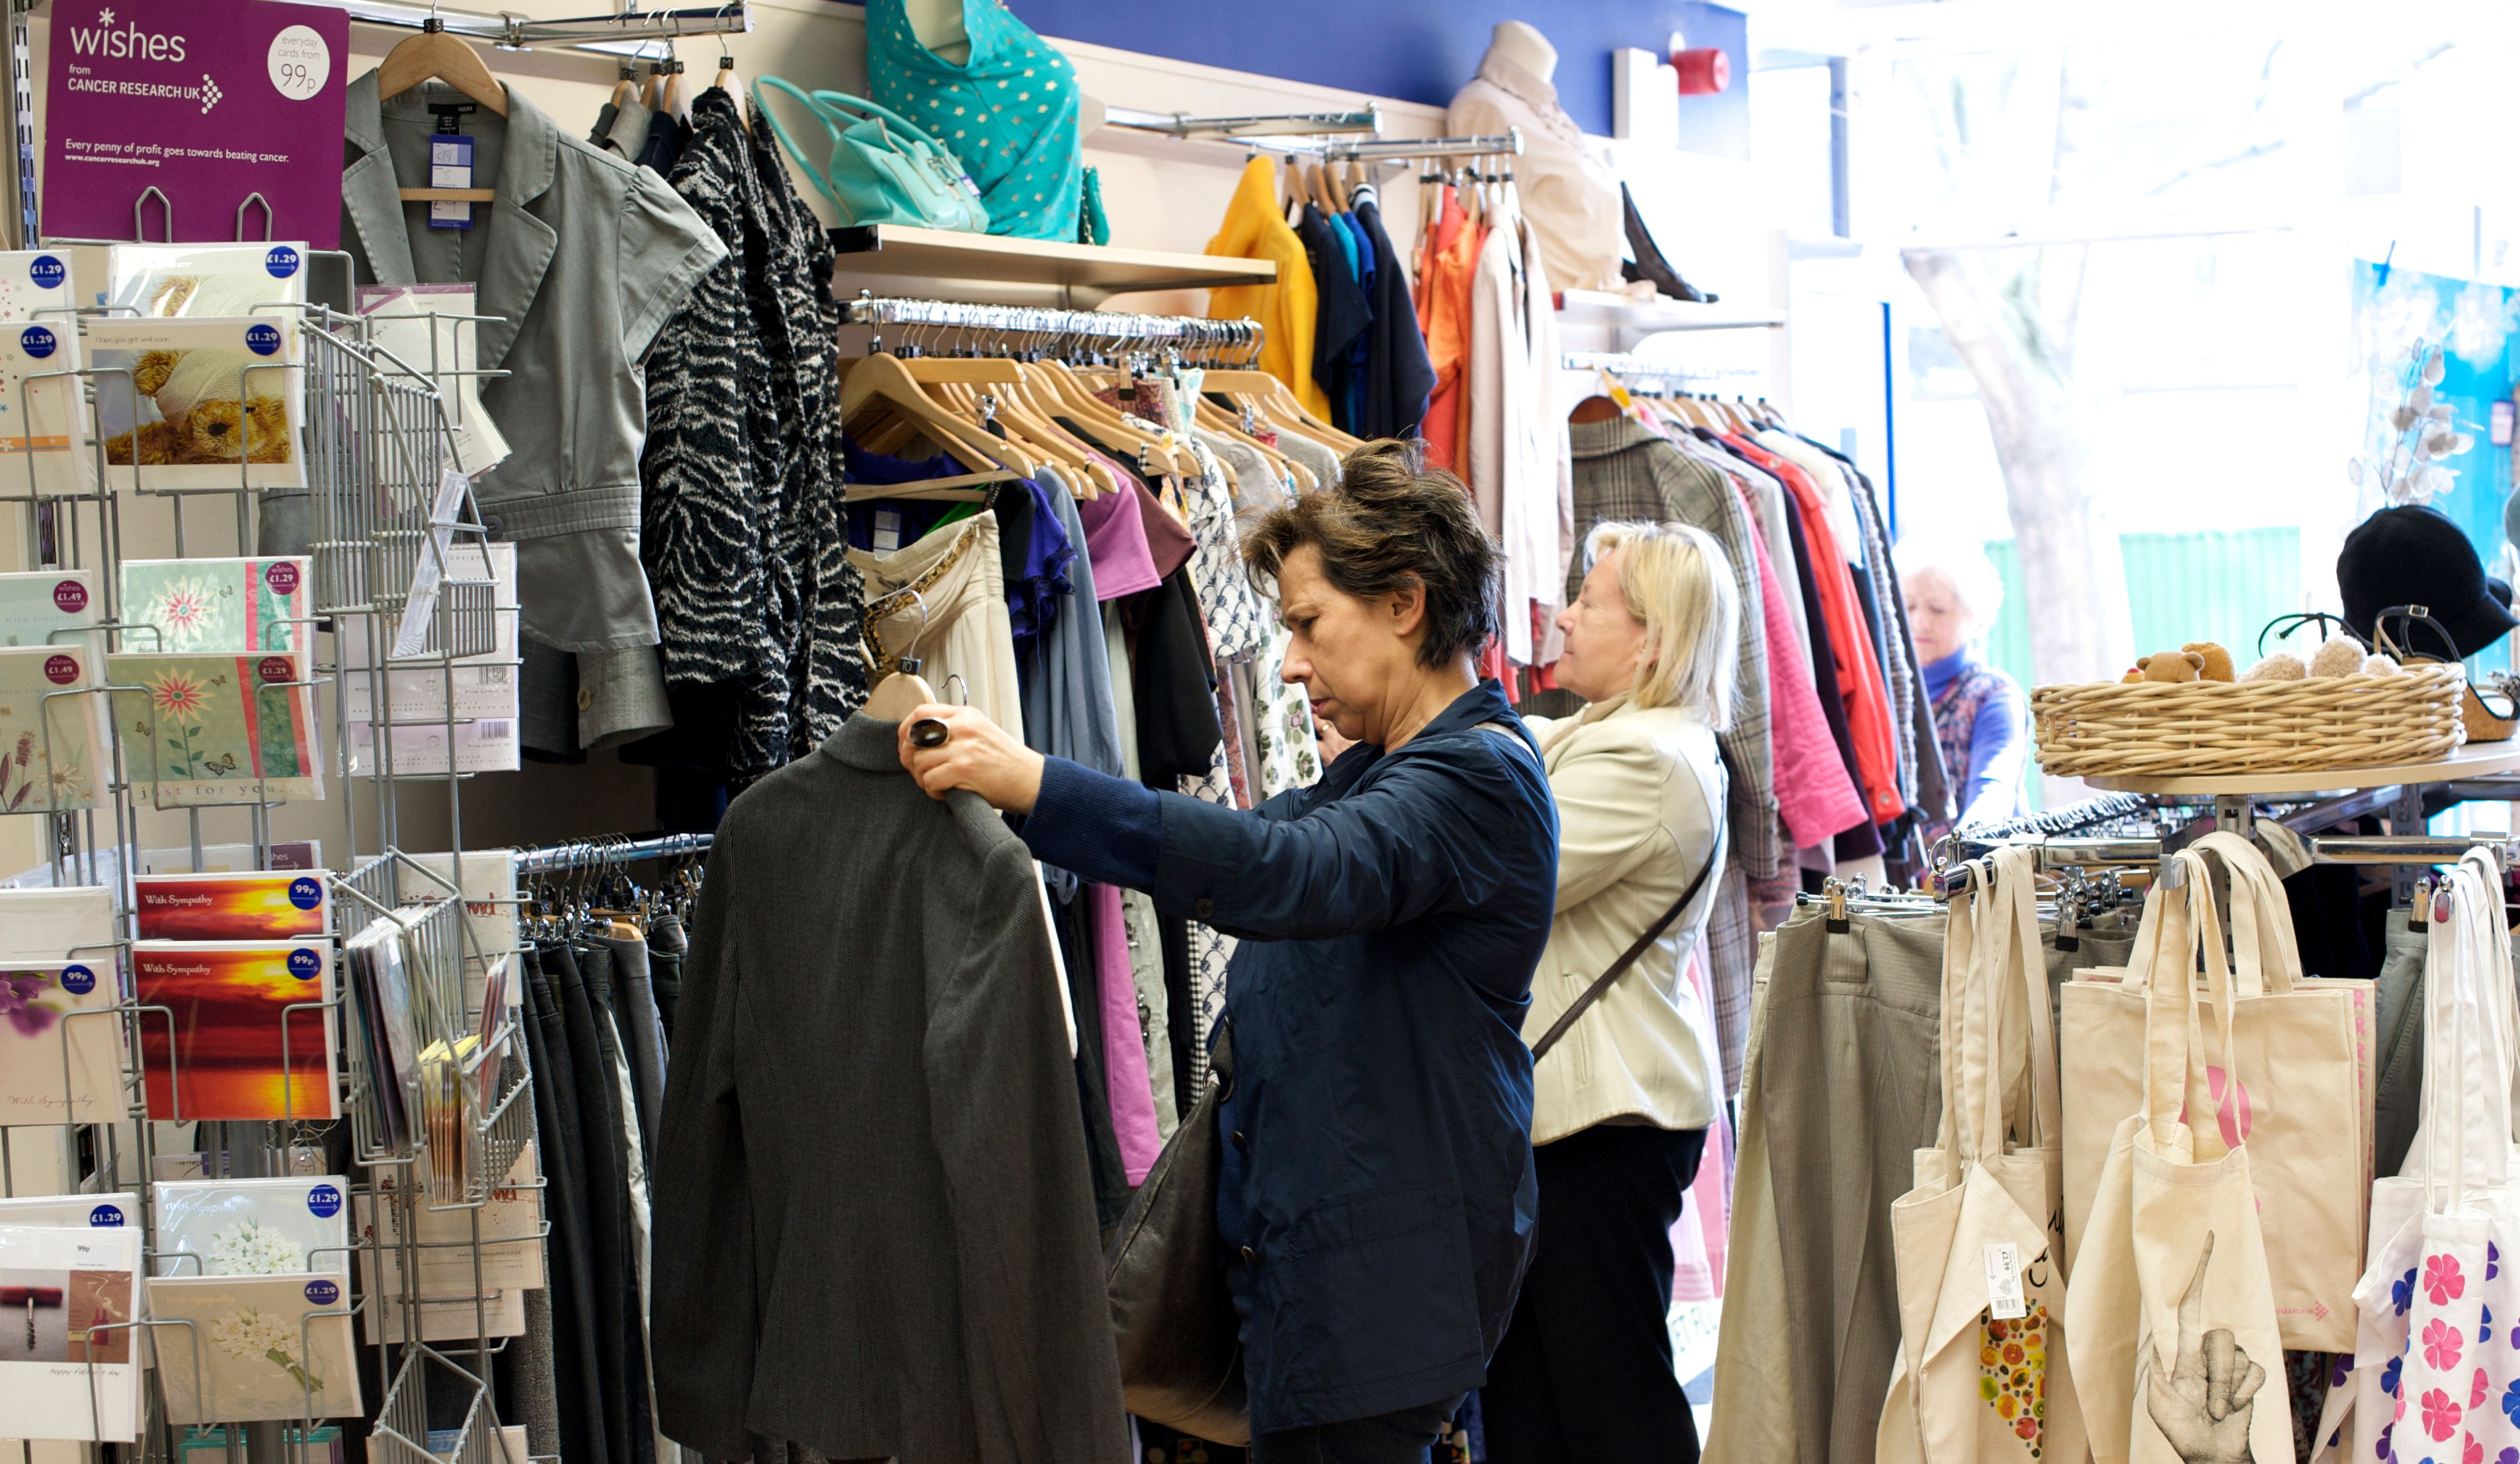 shopping in second hand stores essay Read local papers and speak to other small businesses in the area a specialty retail store located six miles out of town in a free-standing building will need more marketing than a shopping store located in a mall signage.